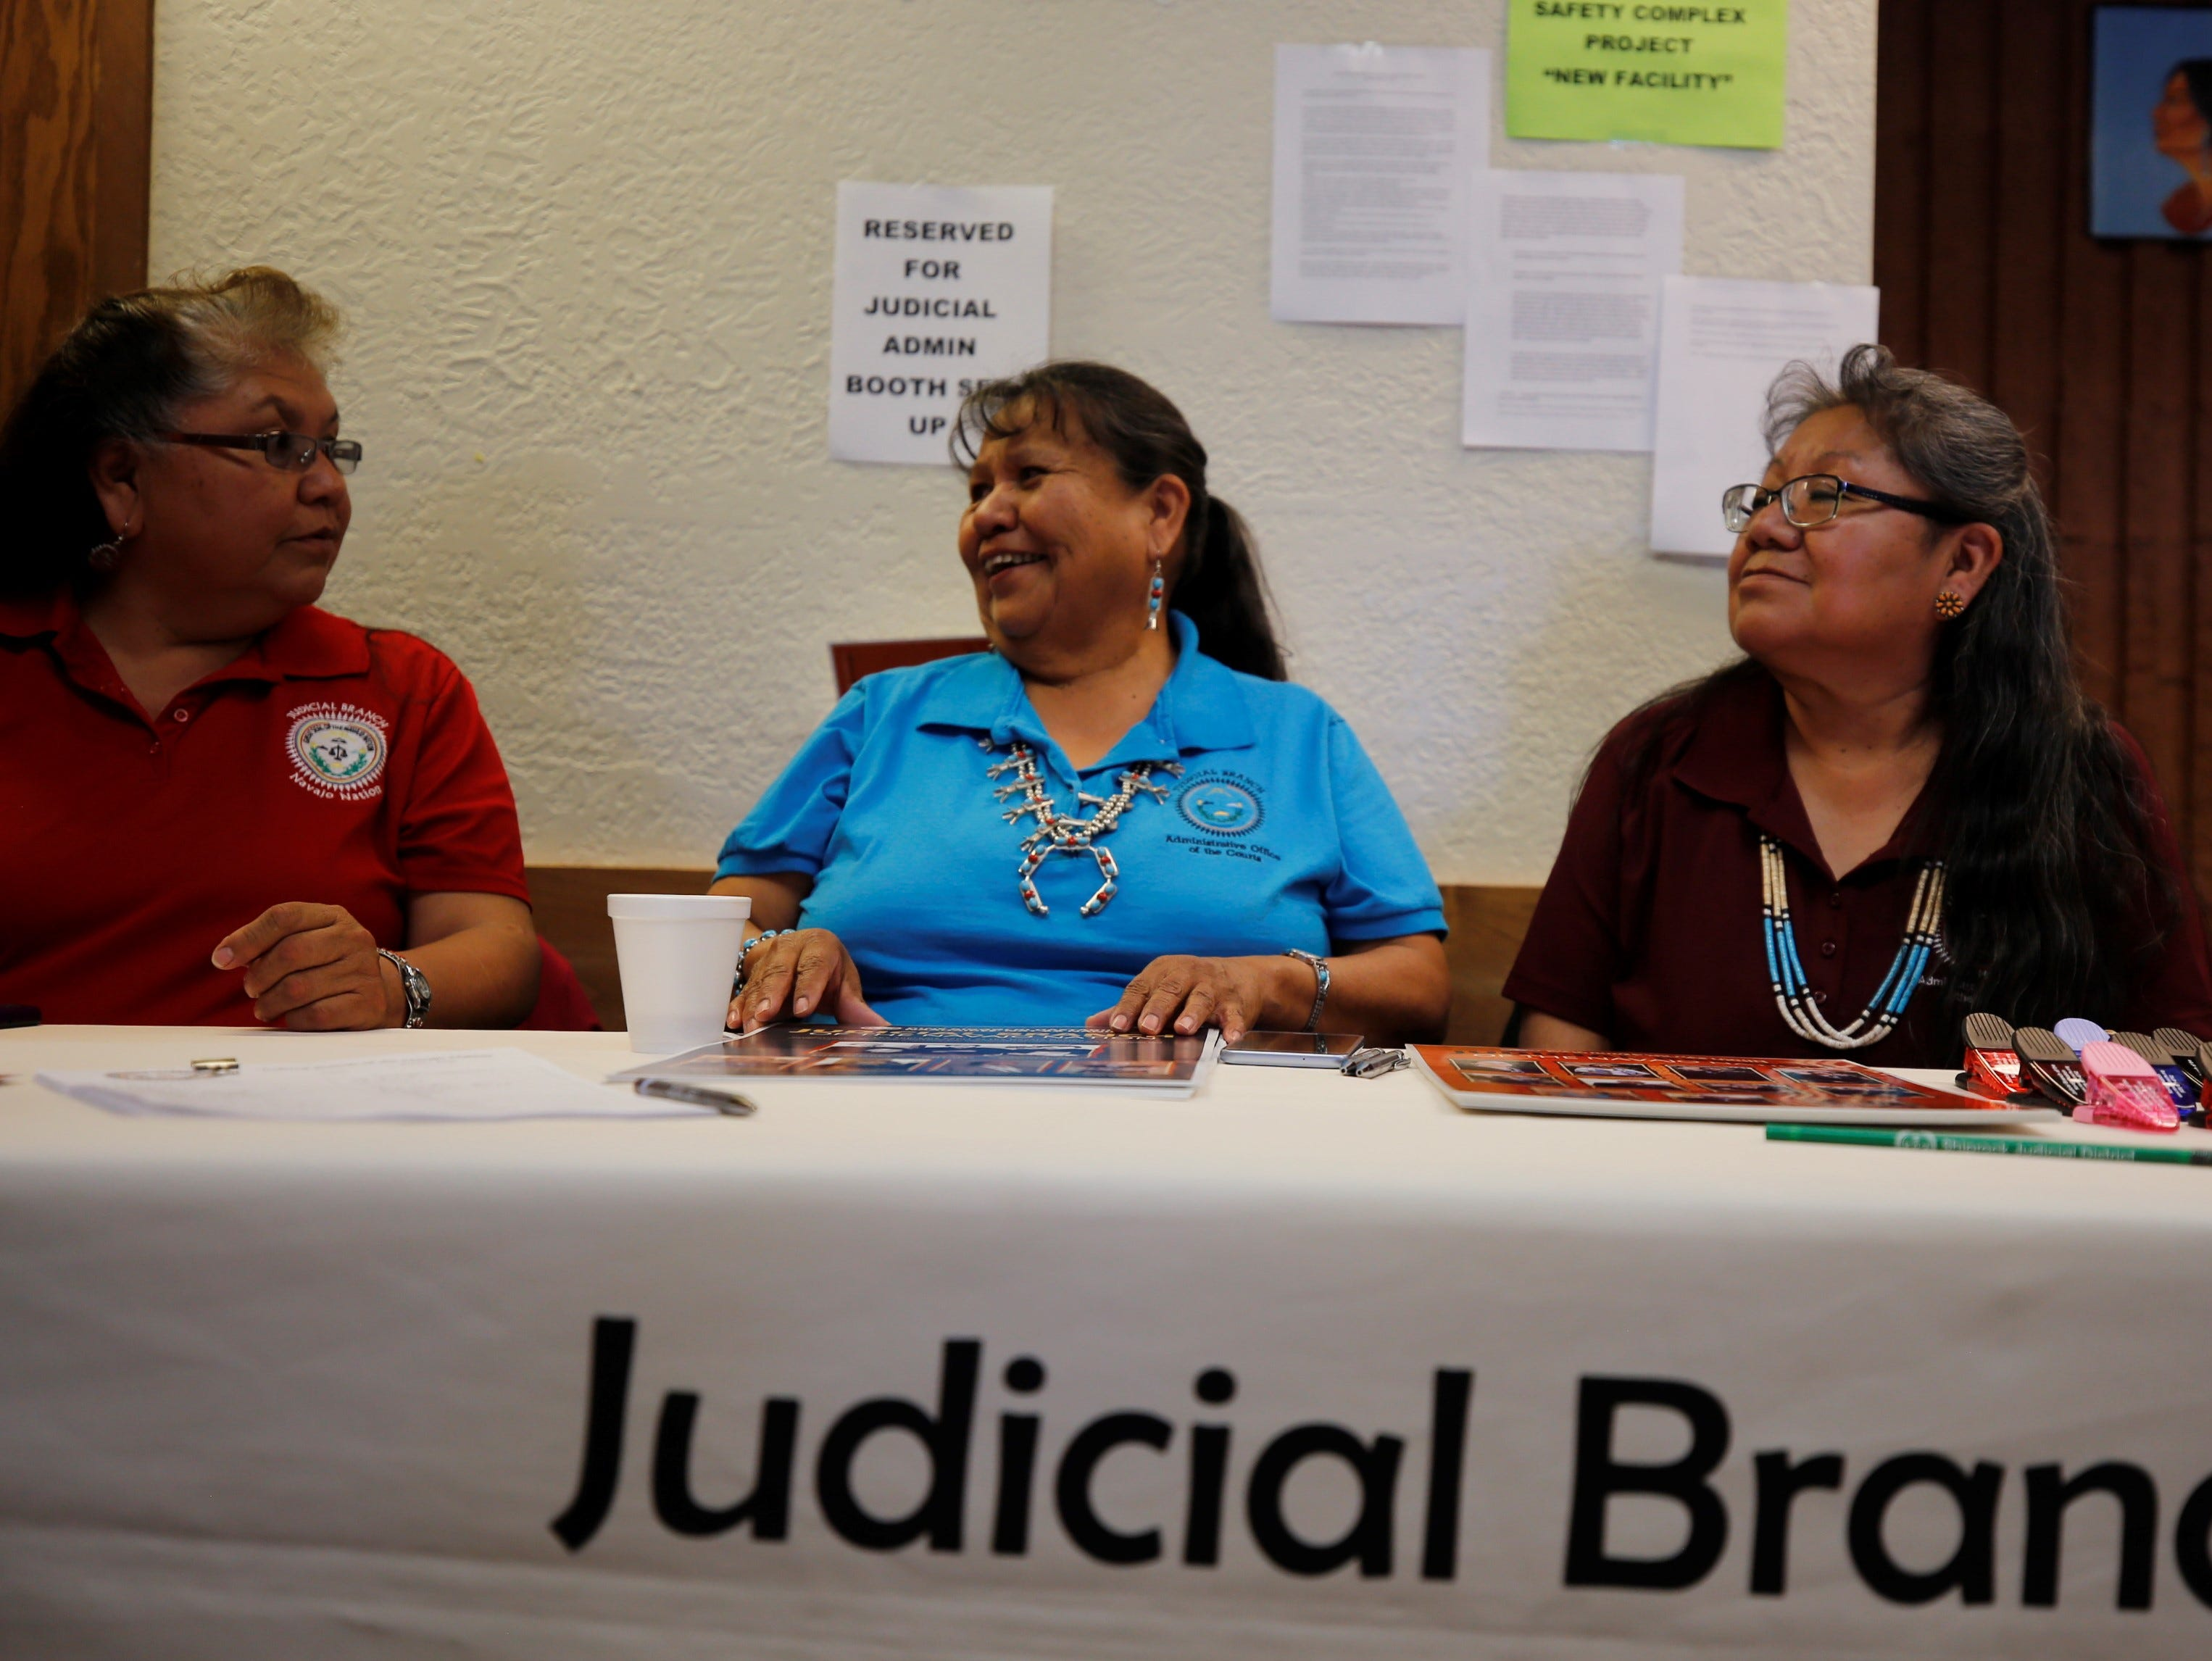 Teresa Chee, Linda Williams and Roberta Sam, from left, work for the Administrative Offices of the Courts in Window Rock, Ariz. They shared information about the Navajo Nation Judicial Branch during Justice Day on Friday in Shiprock.